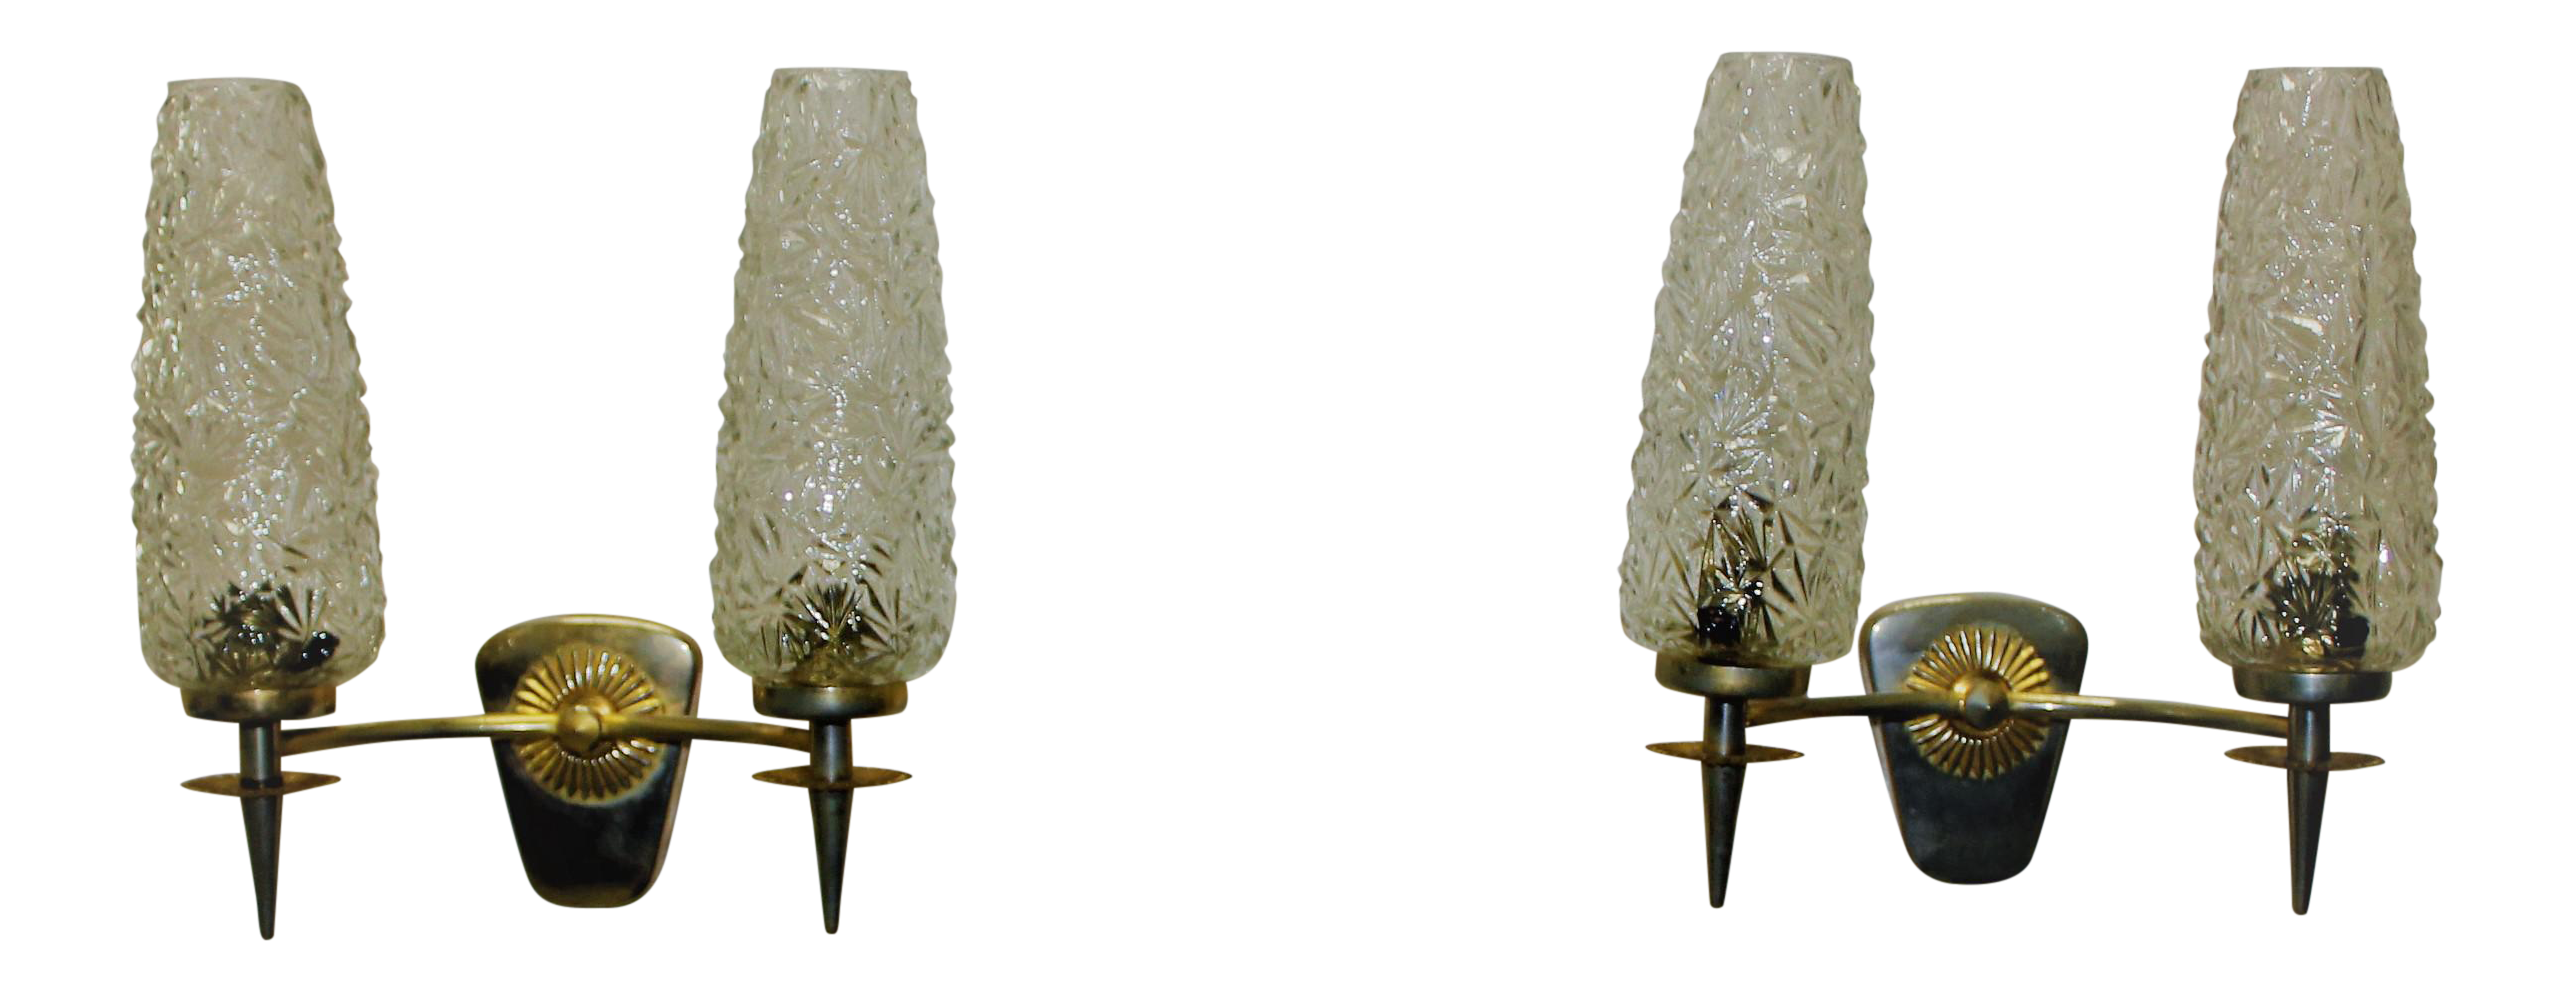 Circa 1960s french art deco vintage maison lunel sconces for Deco maison retro